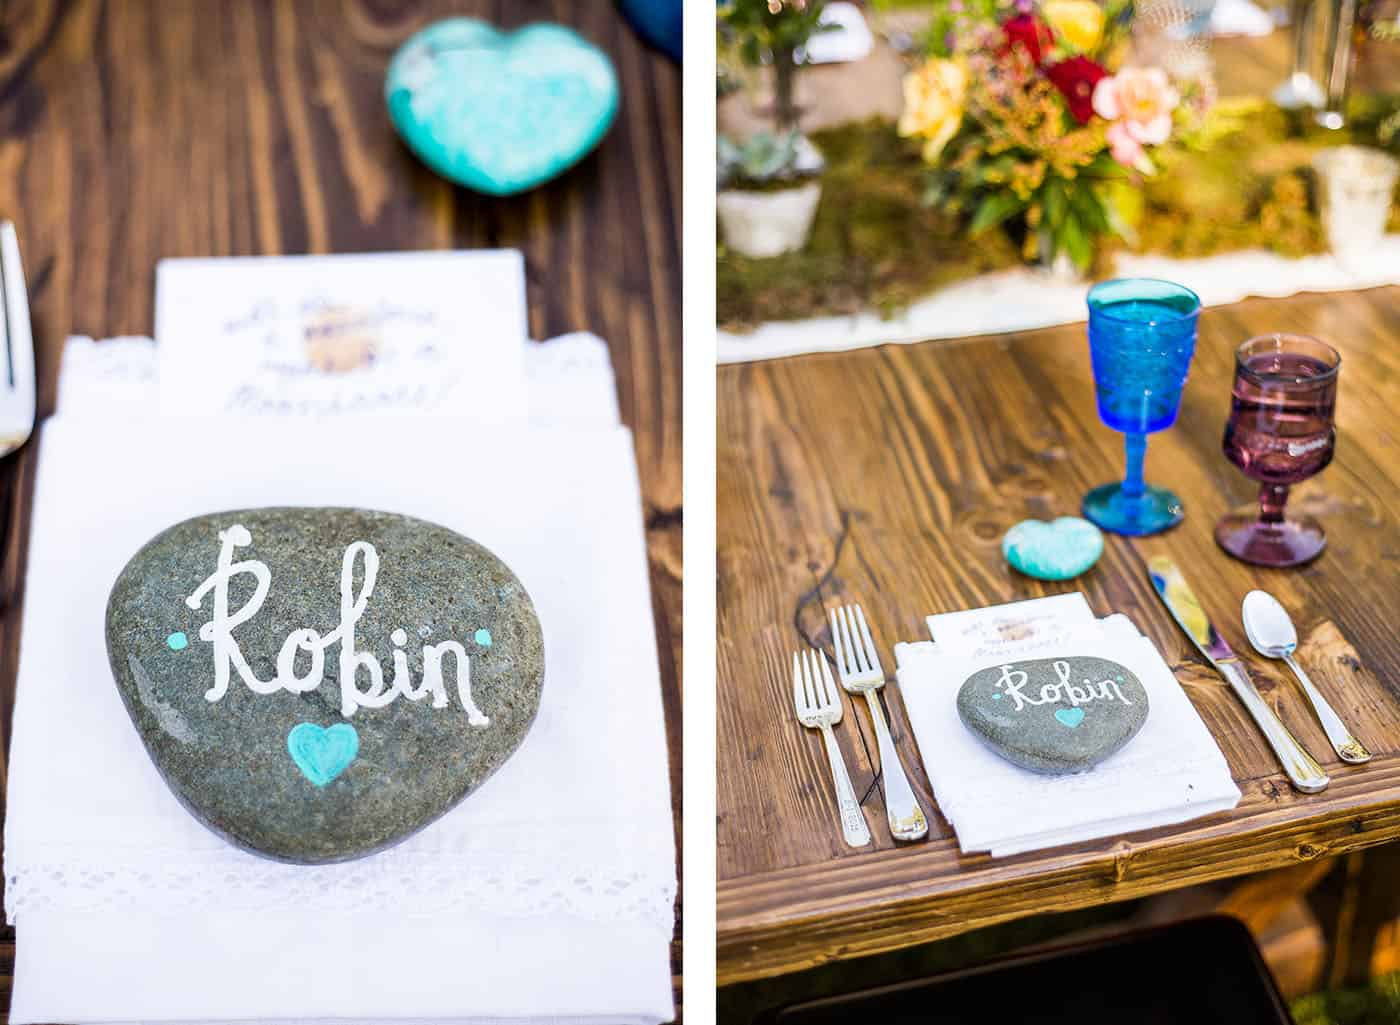 how to photograph a place setting